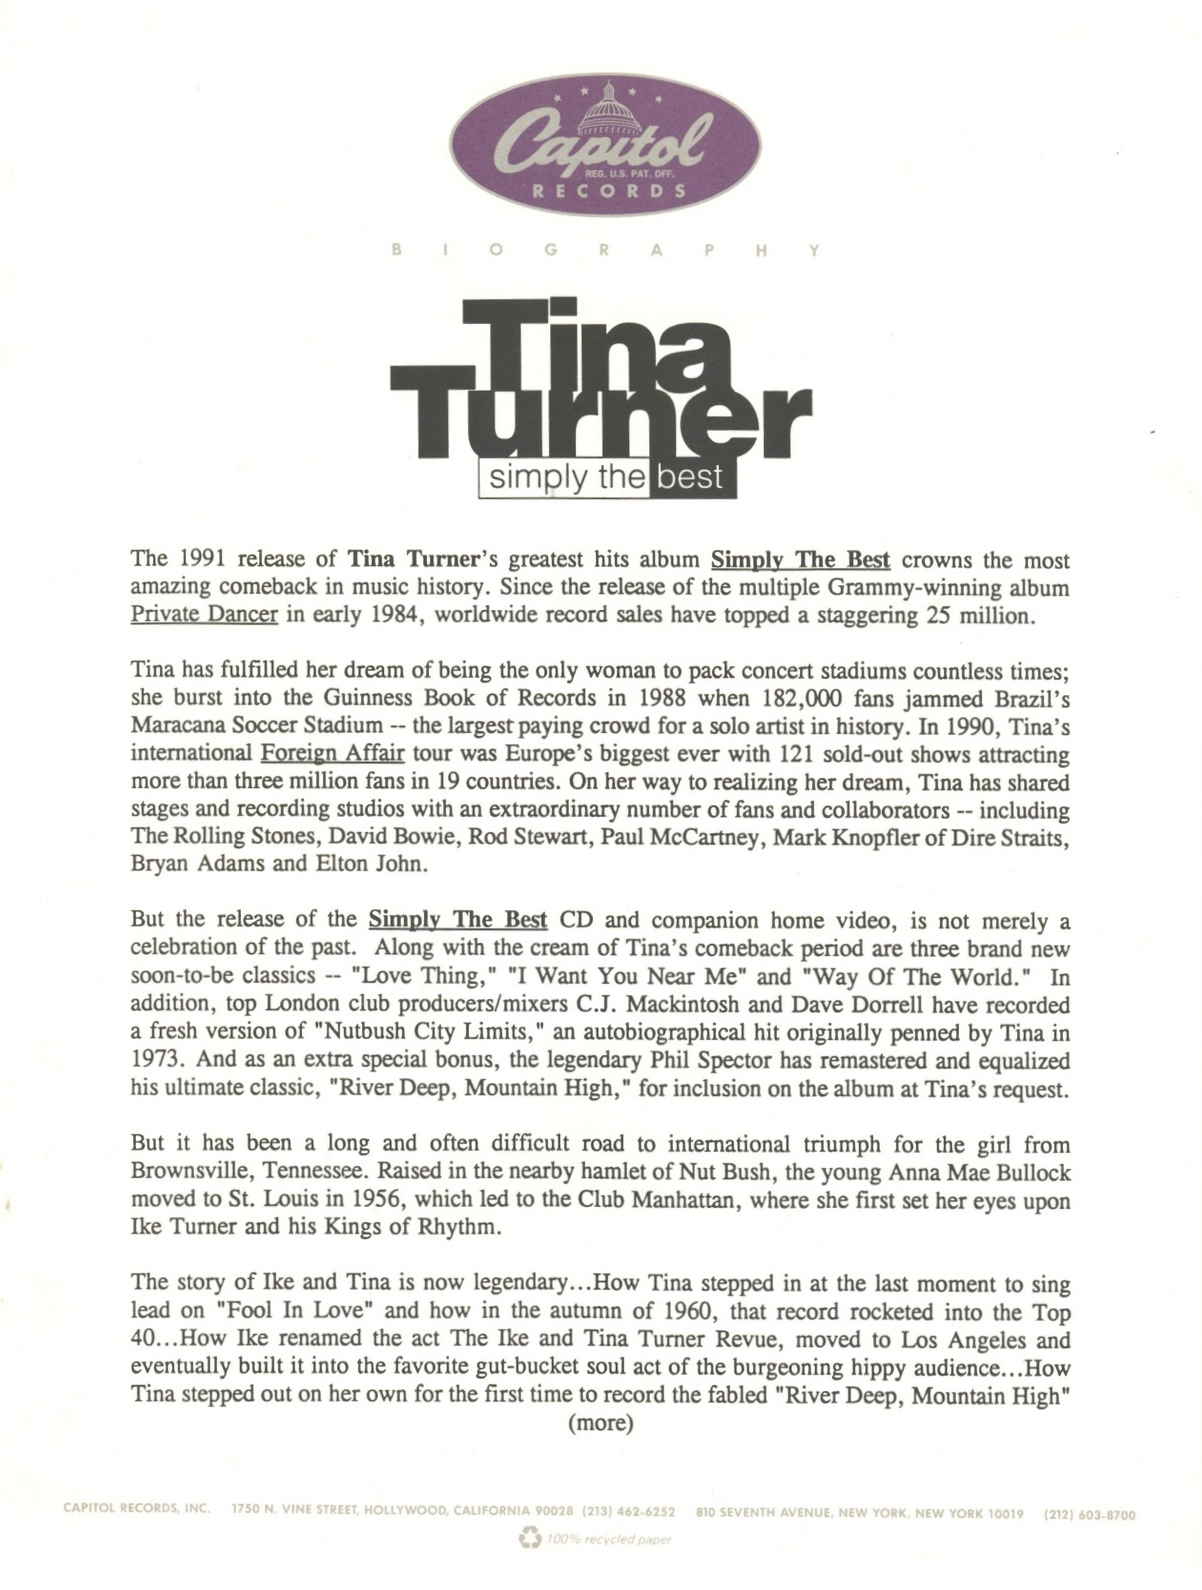 Tina Turner  Simply The Best  Press Release  02  Tina. American Heart Association Acls Online Certification. Bible Colleges In Alaska Not Digitally Signed. Factoring A Trinomial Calculator. Legal Timekeeping Software DUI Lawyer Broward. Lutron Sivoia Shades Price Loans For Lawsuits. Art Institute Of Houston Southwest Freeway. Crop In Microsoft Word Financial Services Crm. Top Online Savings Account Rates